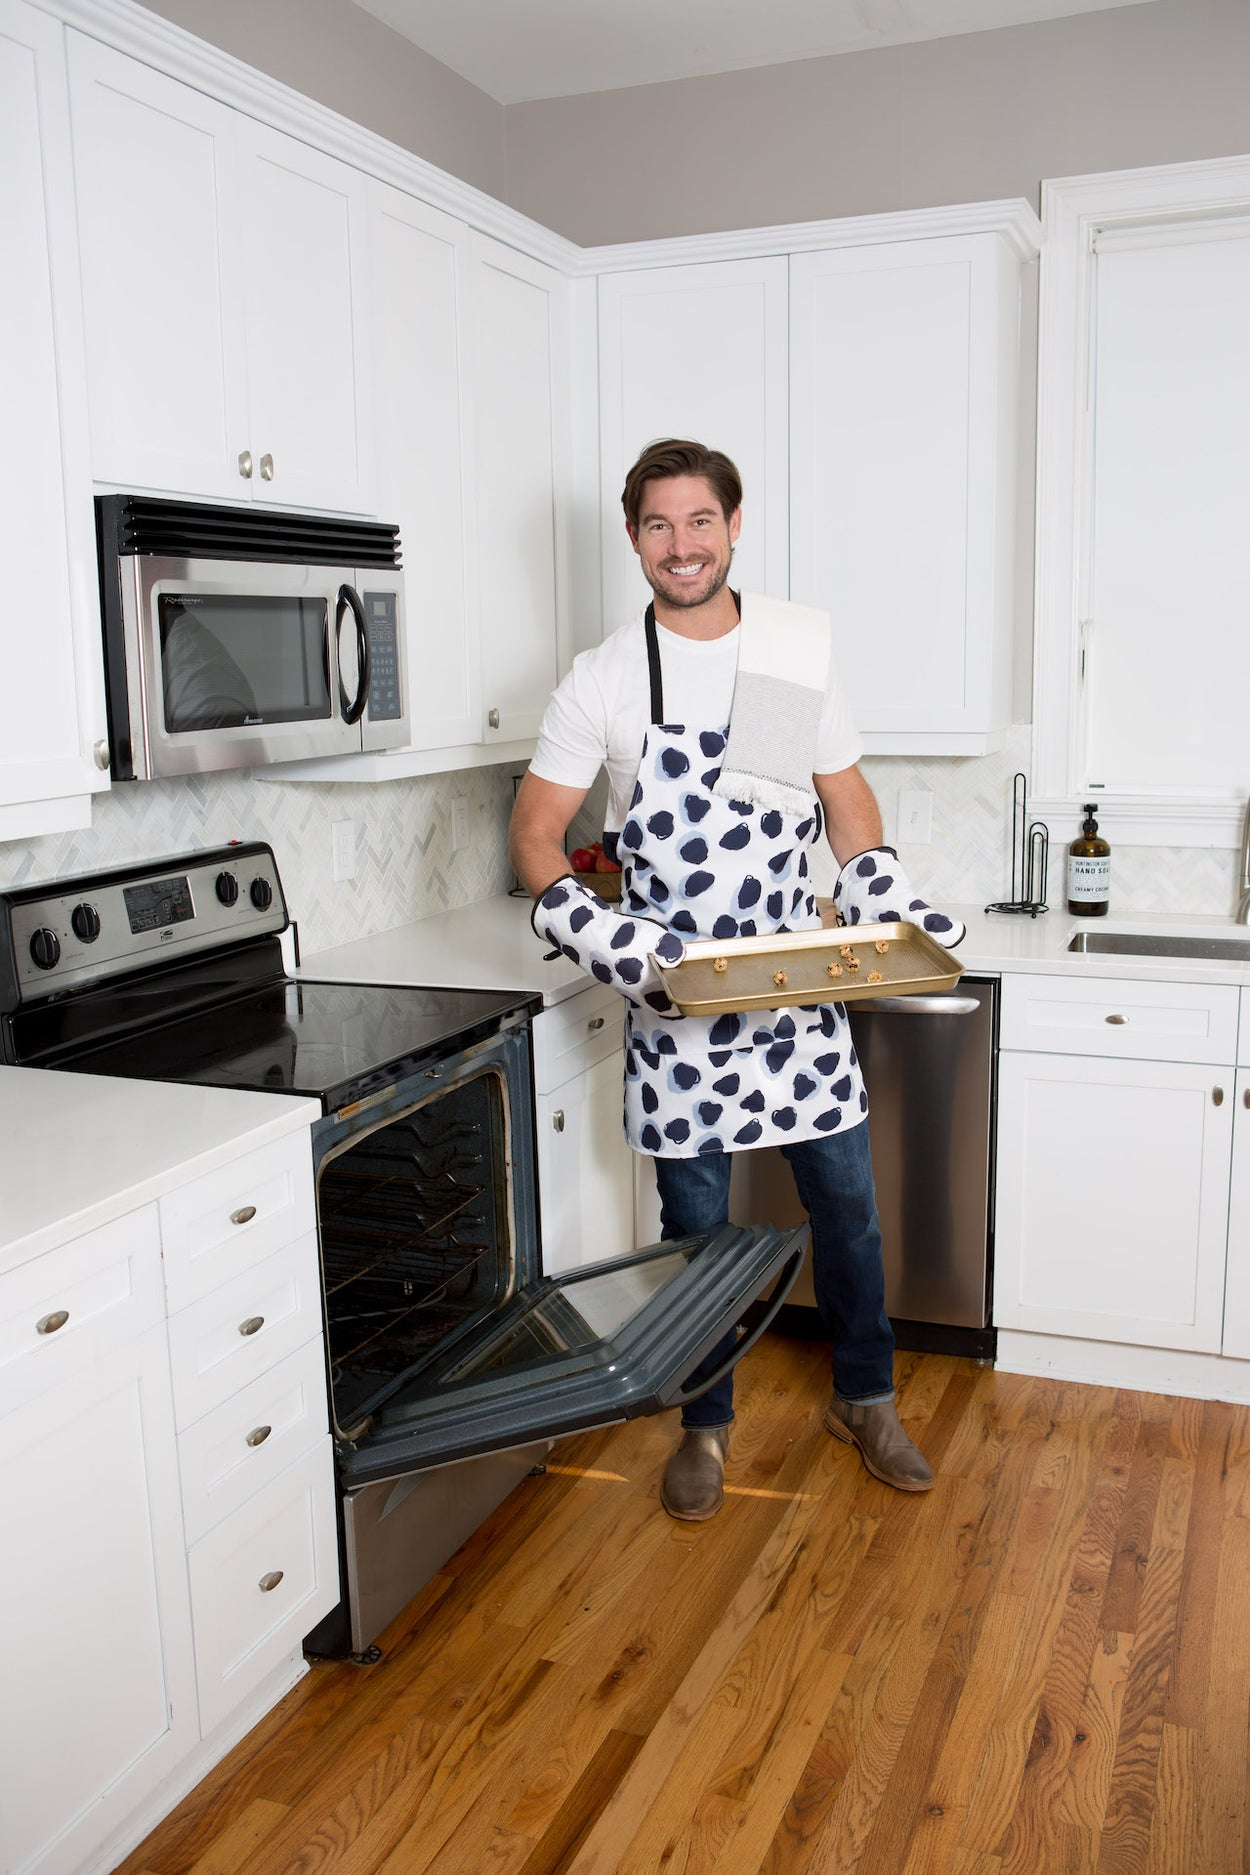 Abstract Polka Dot Apron